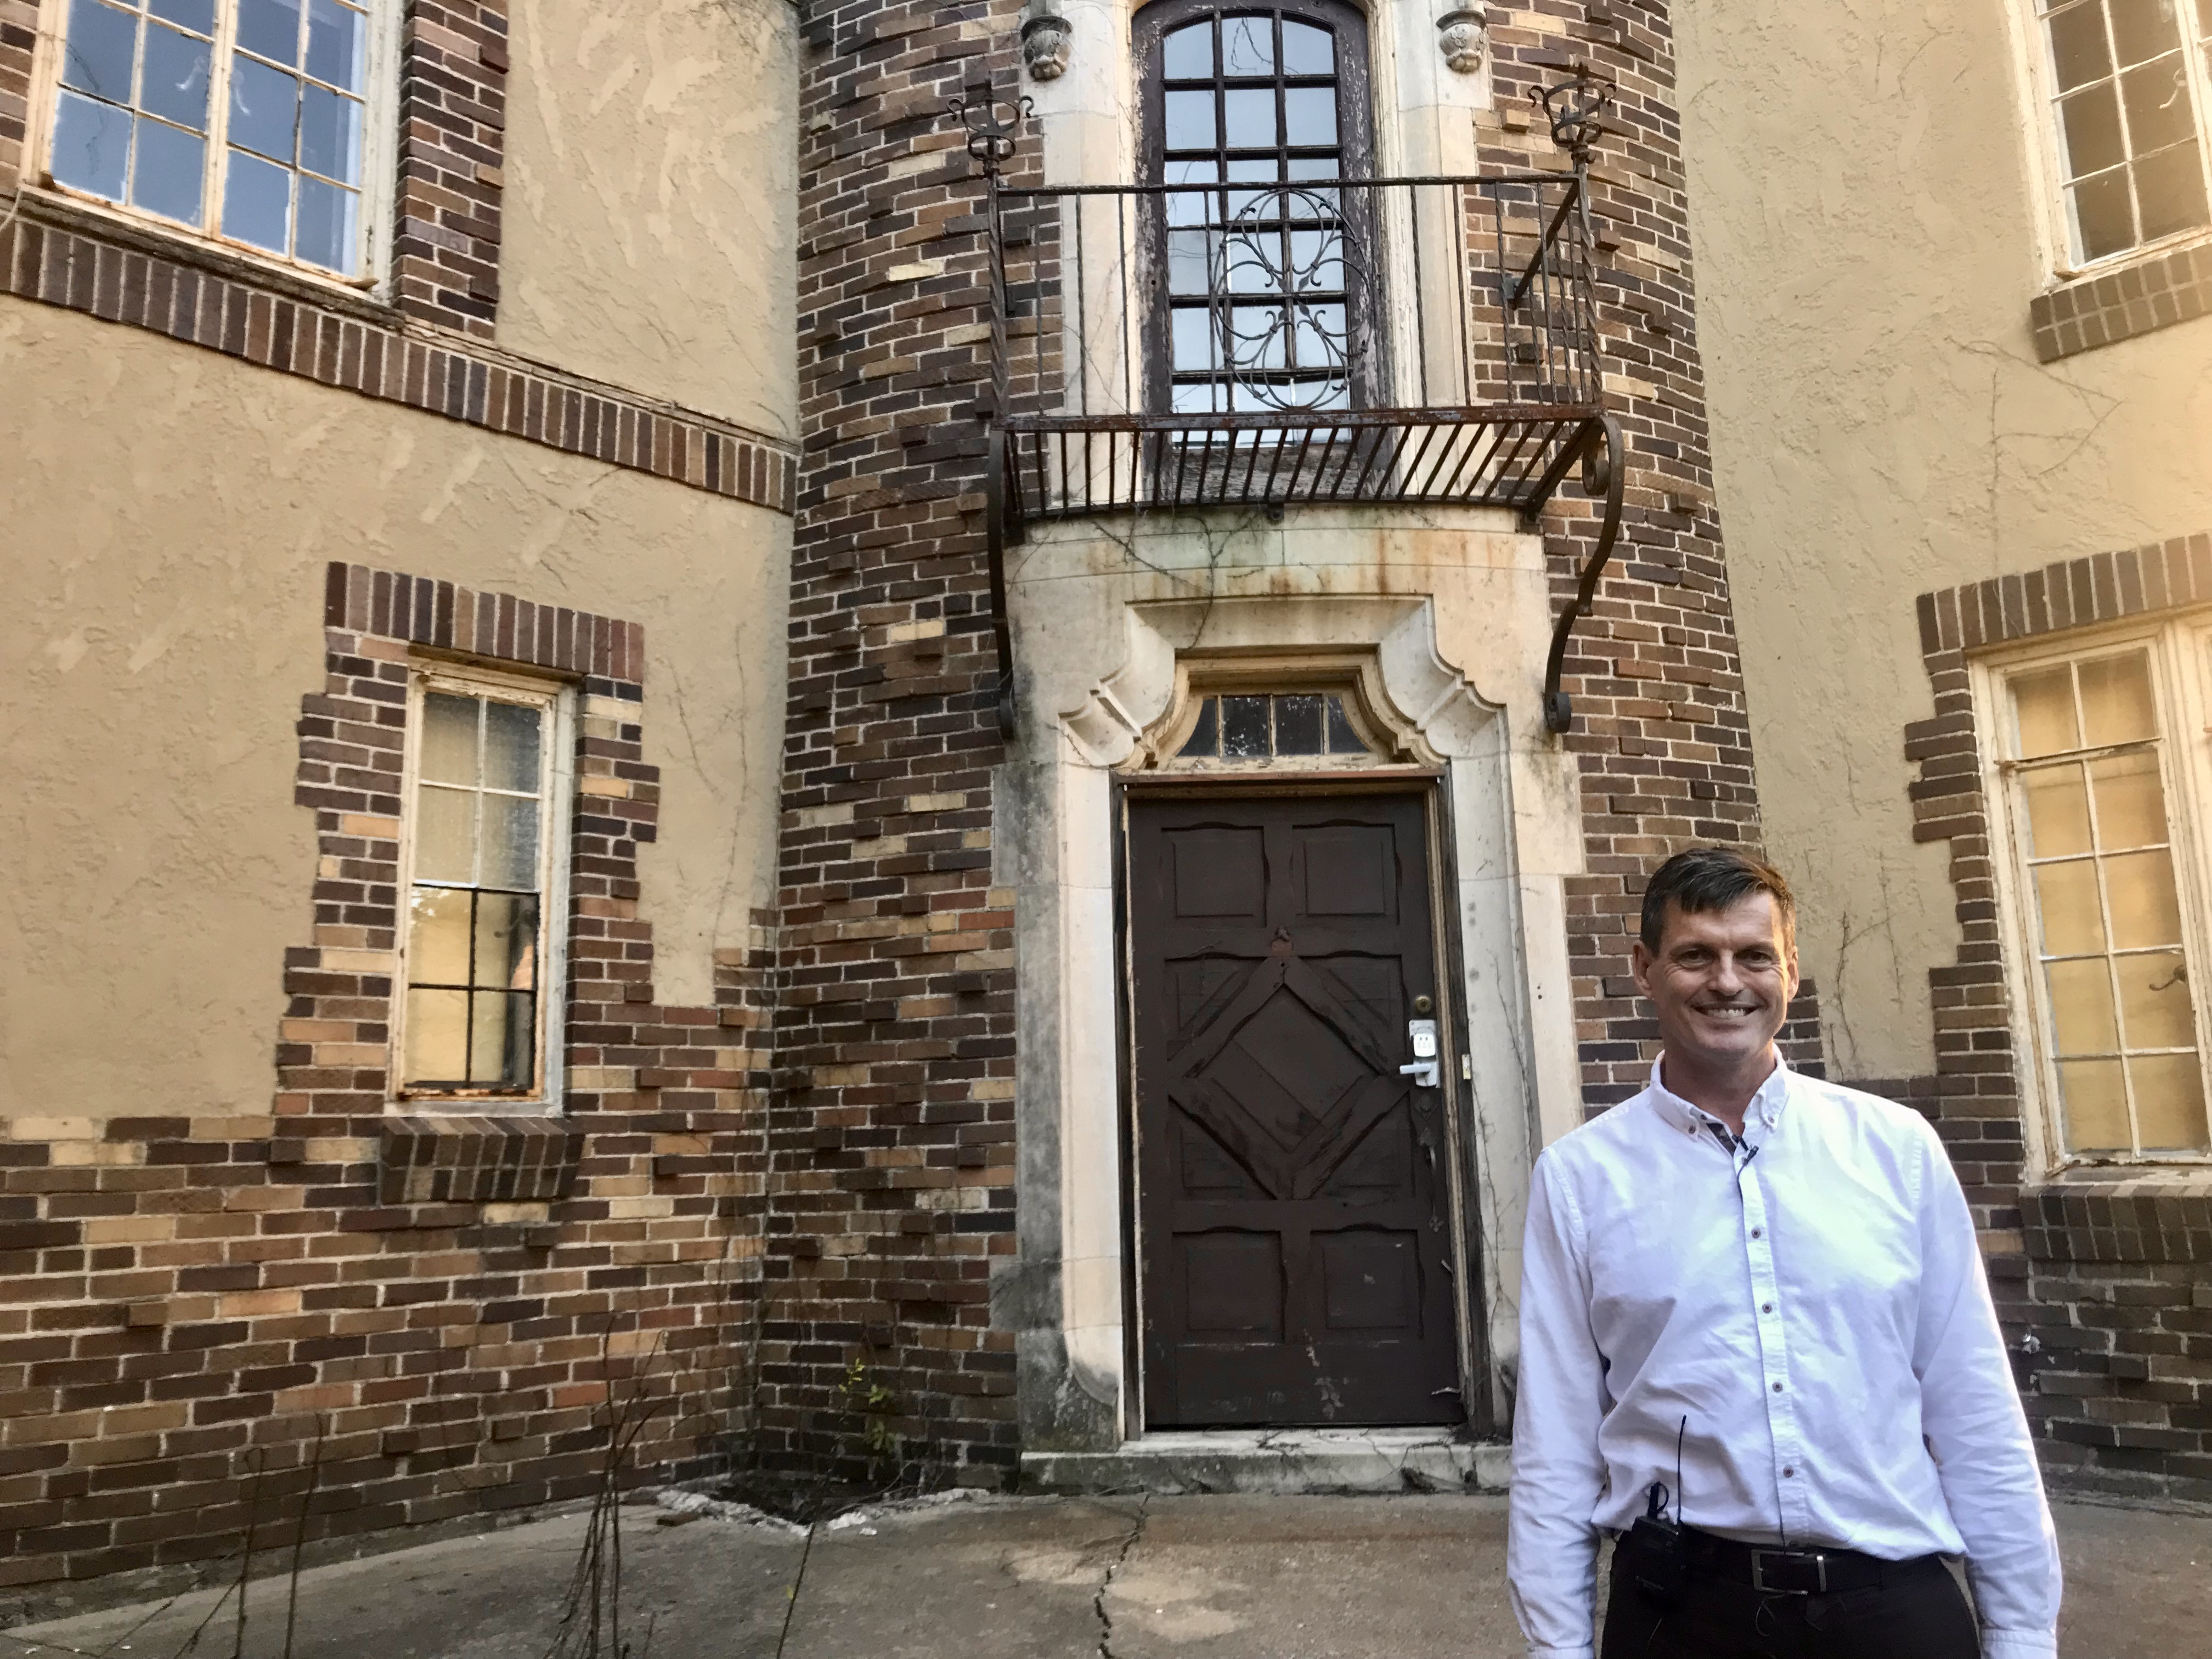 A University of Illinois professor has plans to restore a historical landmark by embracing its French-inspired architecture. His project looks convert the former sorority house into an 18-unit apartment complex. (WCCU)